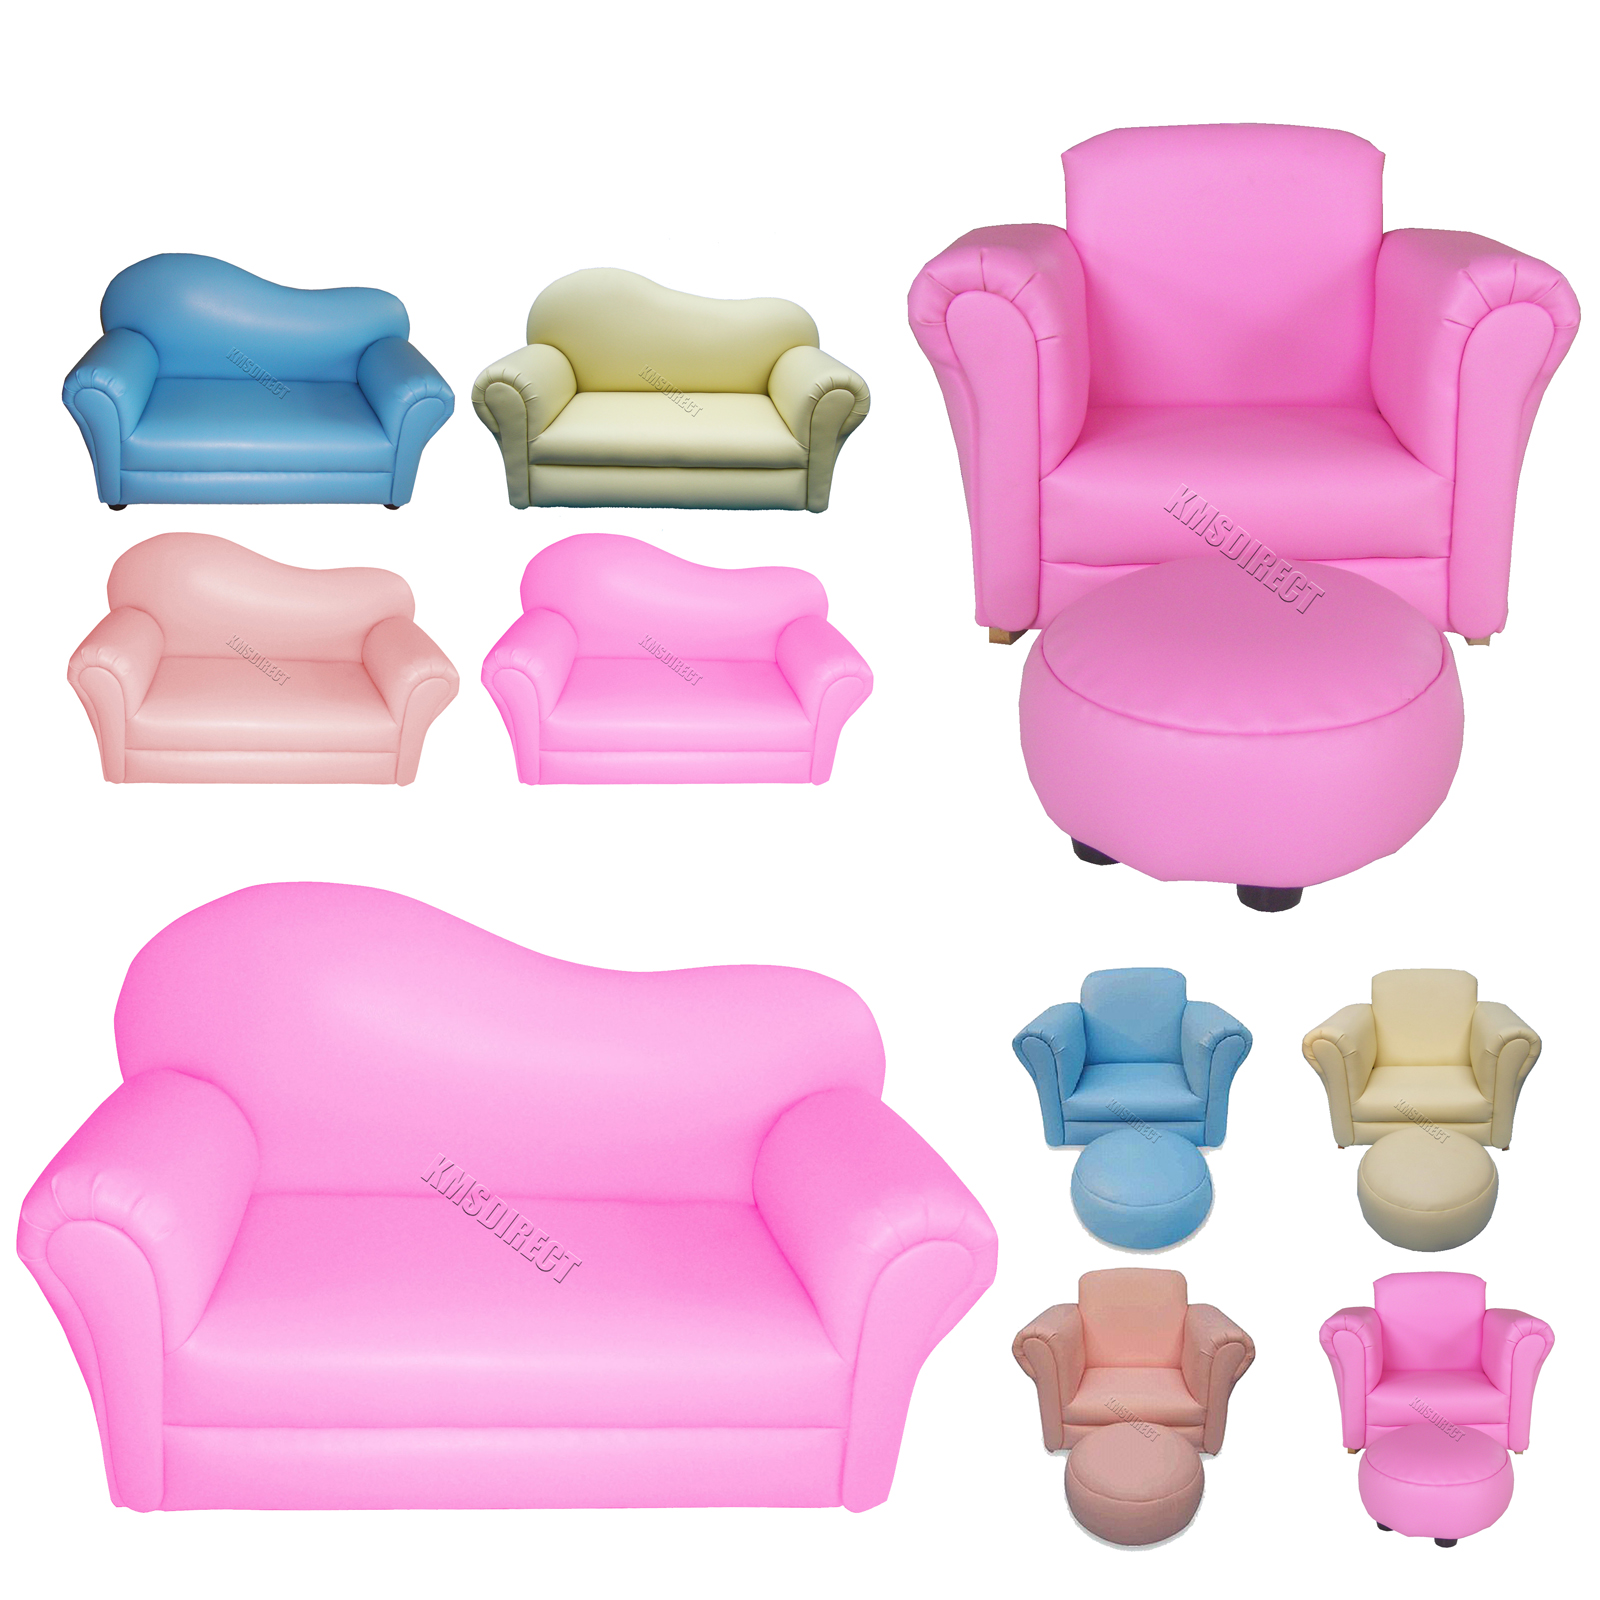 Children kids child sofa bedroom furniture armchair couch for Childrens armchair and footstool